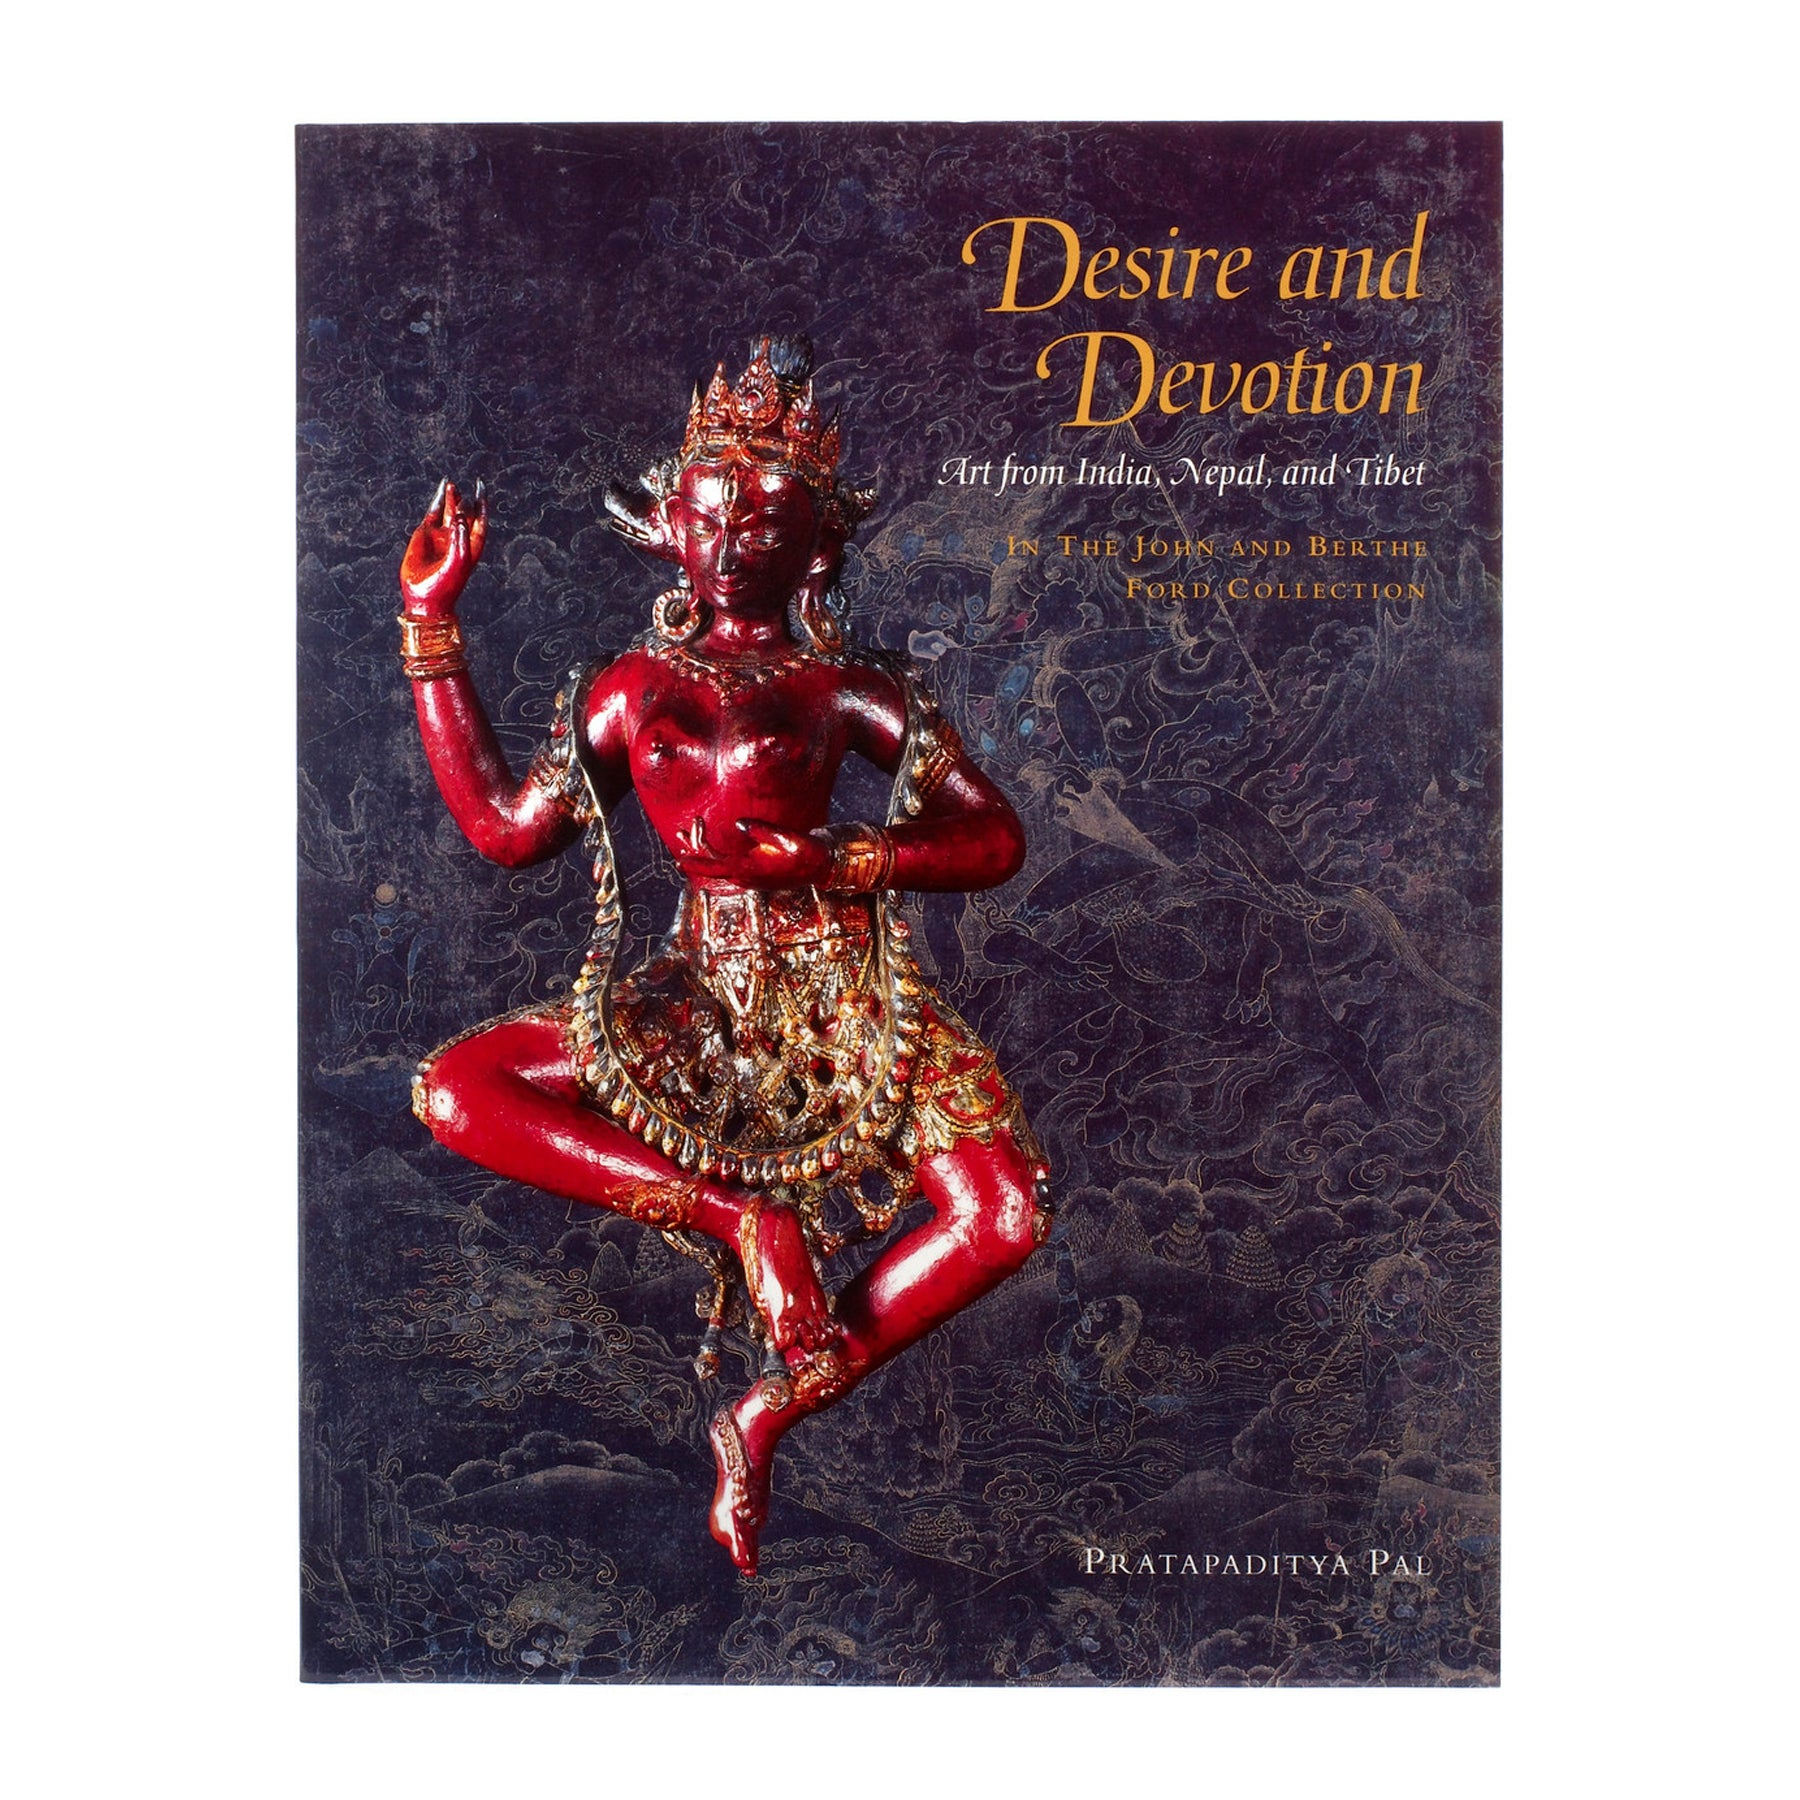 Desire and Devotion: Art from India, Nepal, and Tibet in the John and Berthe Ford Collection